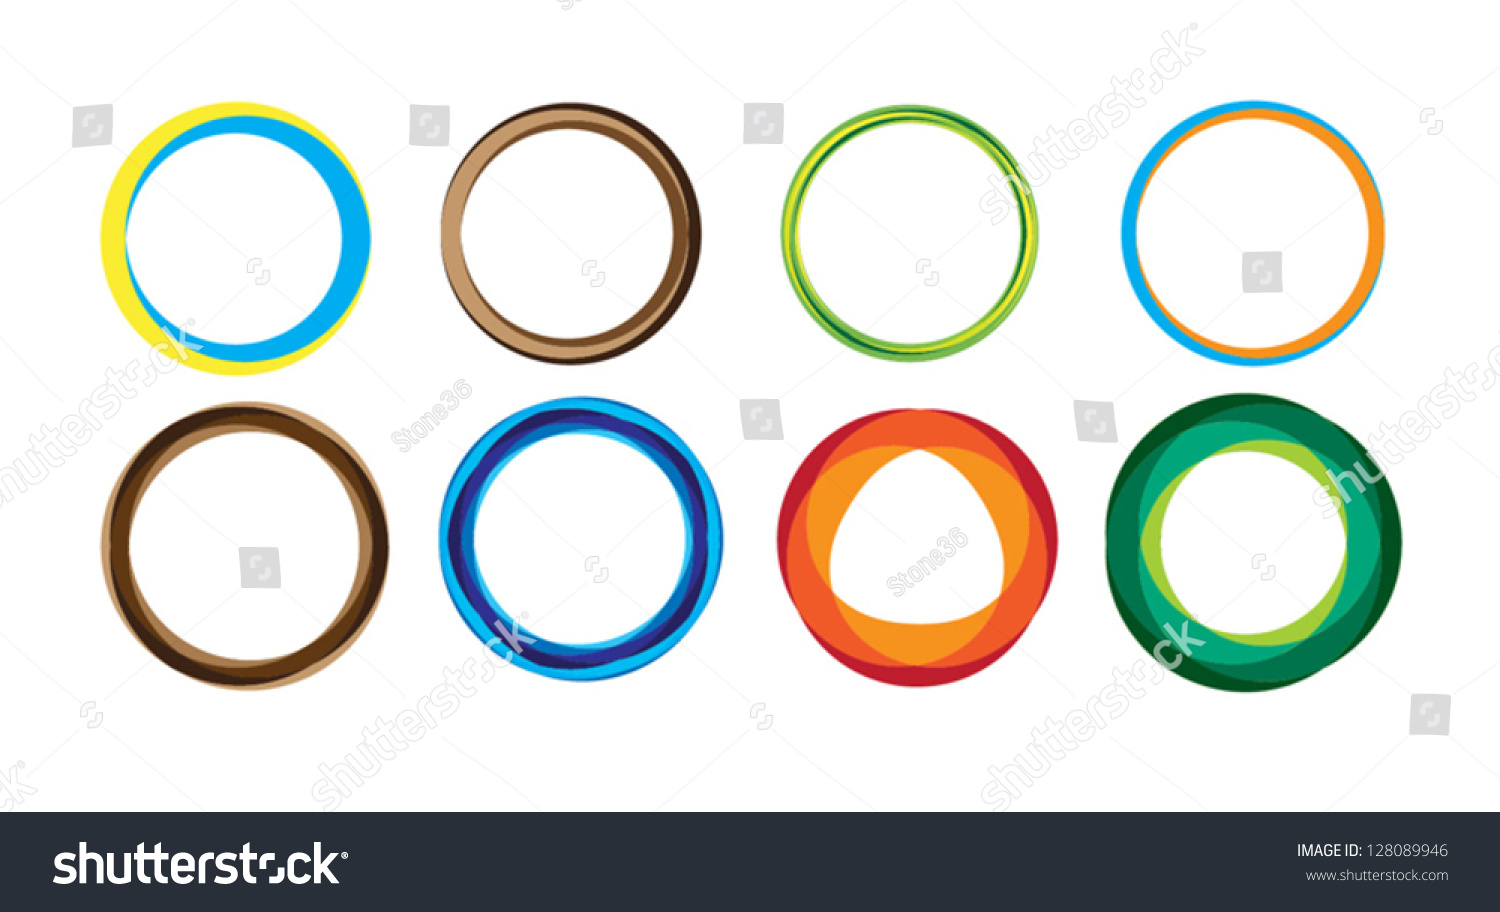 Geometric circle entwined wheels business abstract stock vector geometric circle entwined wheels business abstract icon as sign symbol logo biocorpaavc Images